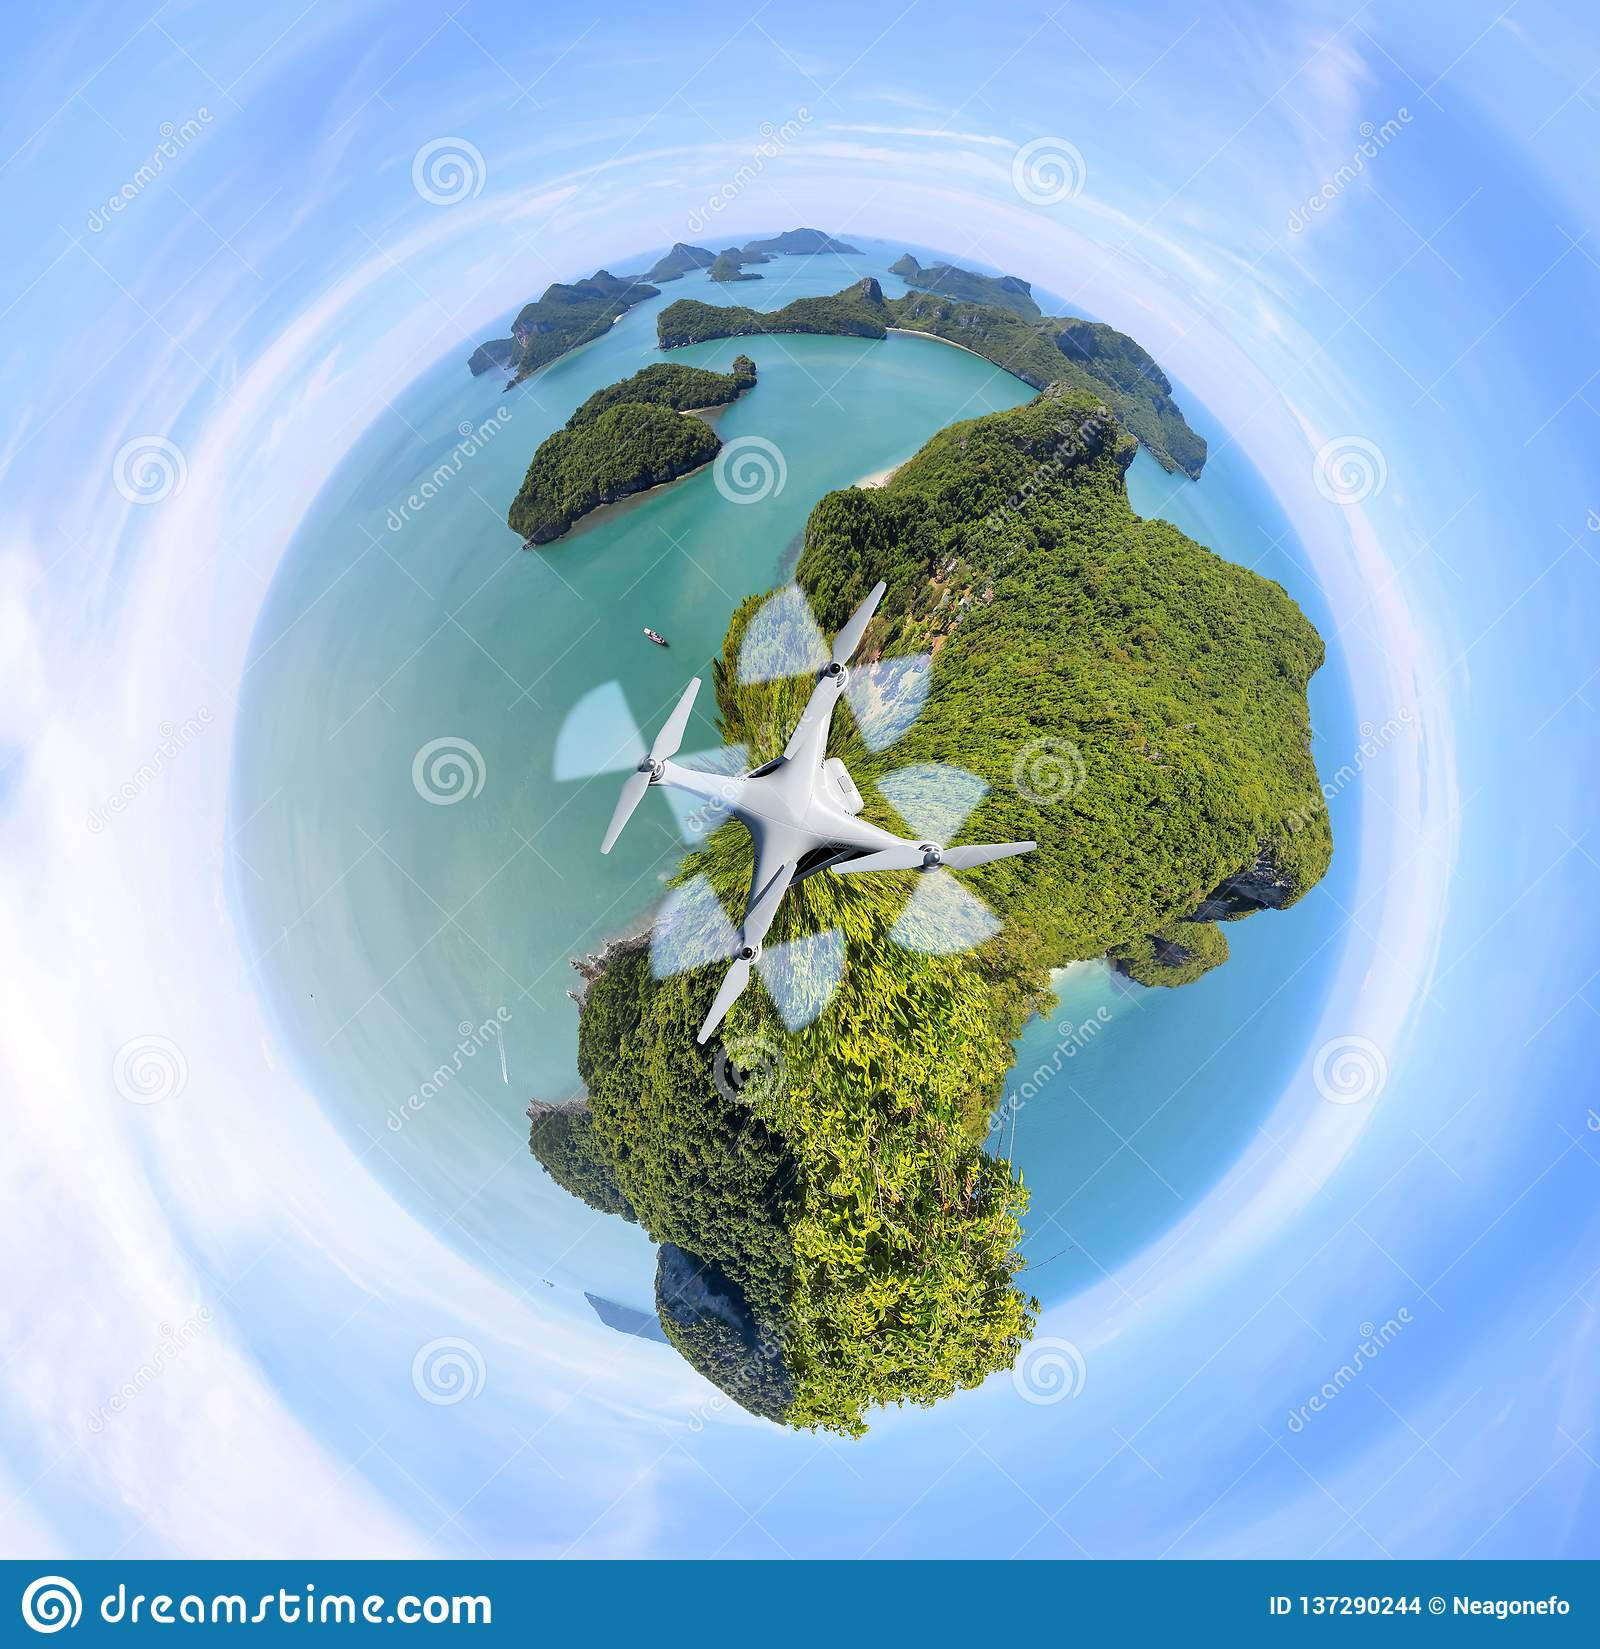 Circle Green planet, Panorama view of ang thong Island ,Archipelago in Thailand